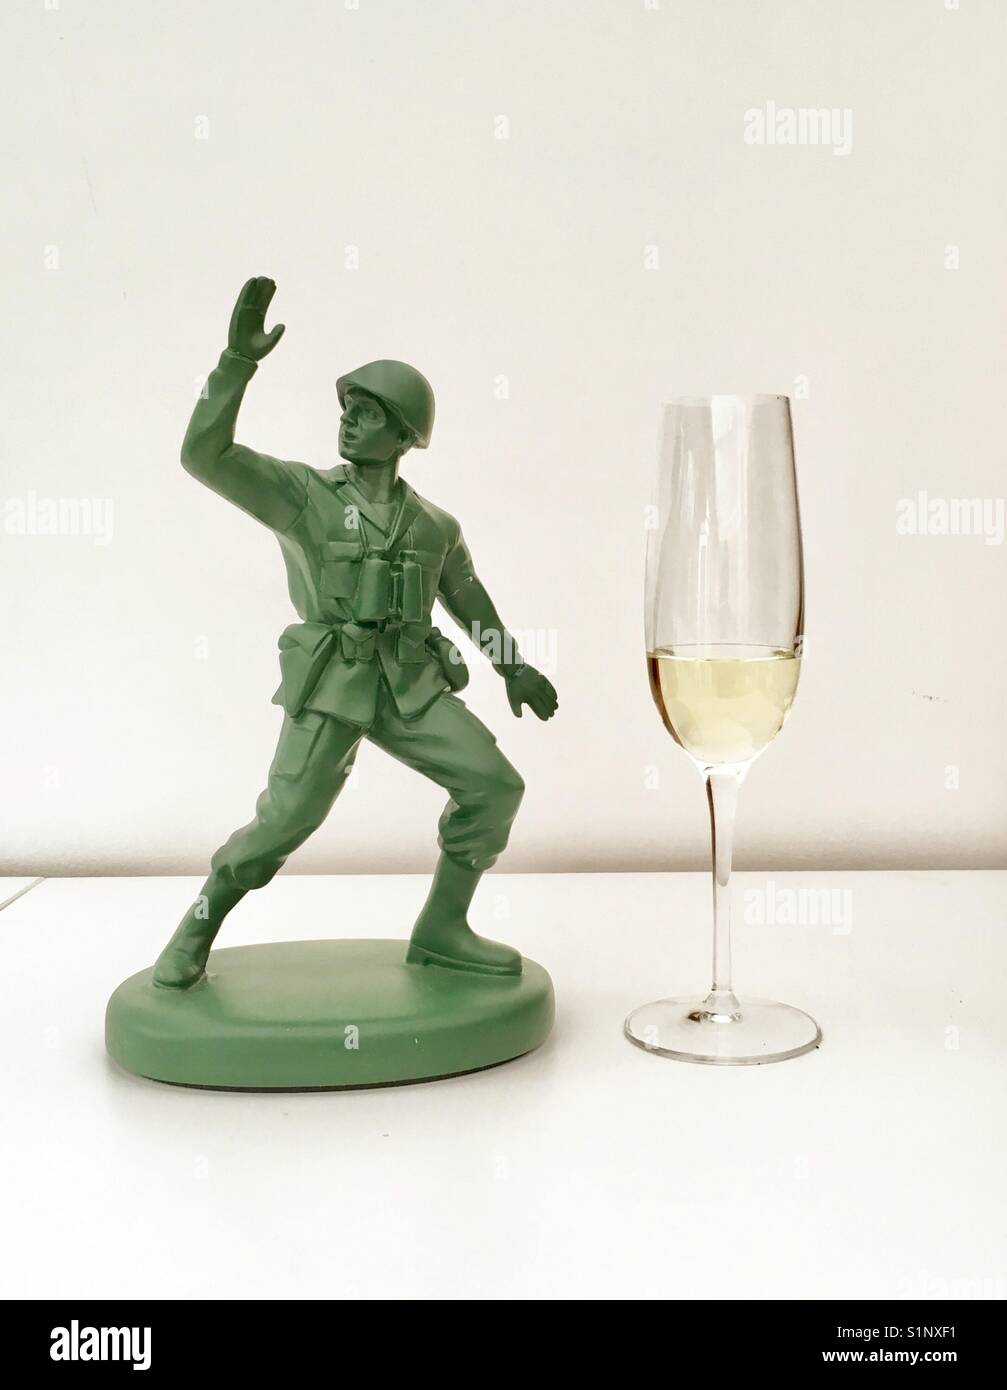 Toy soldier and champagne flute - Stock Image